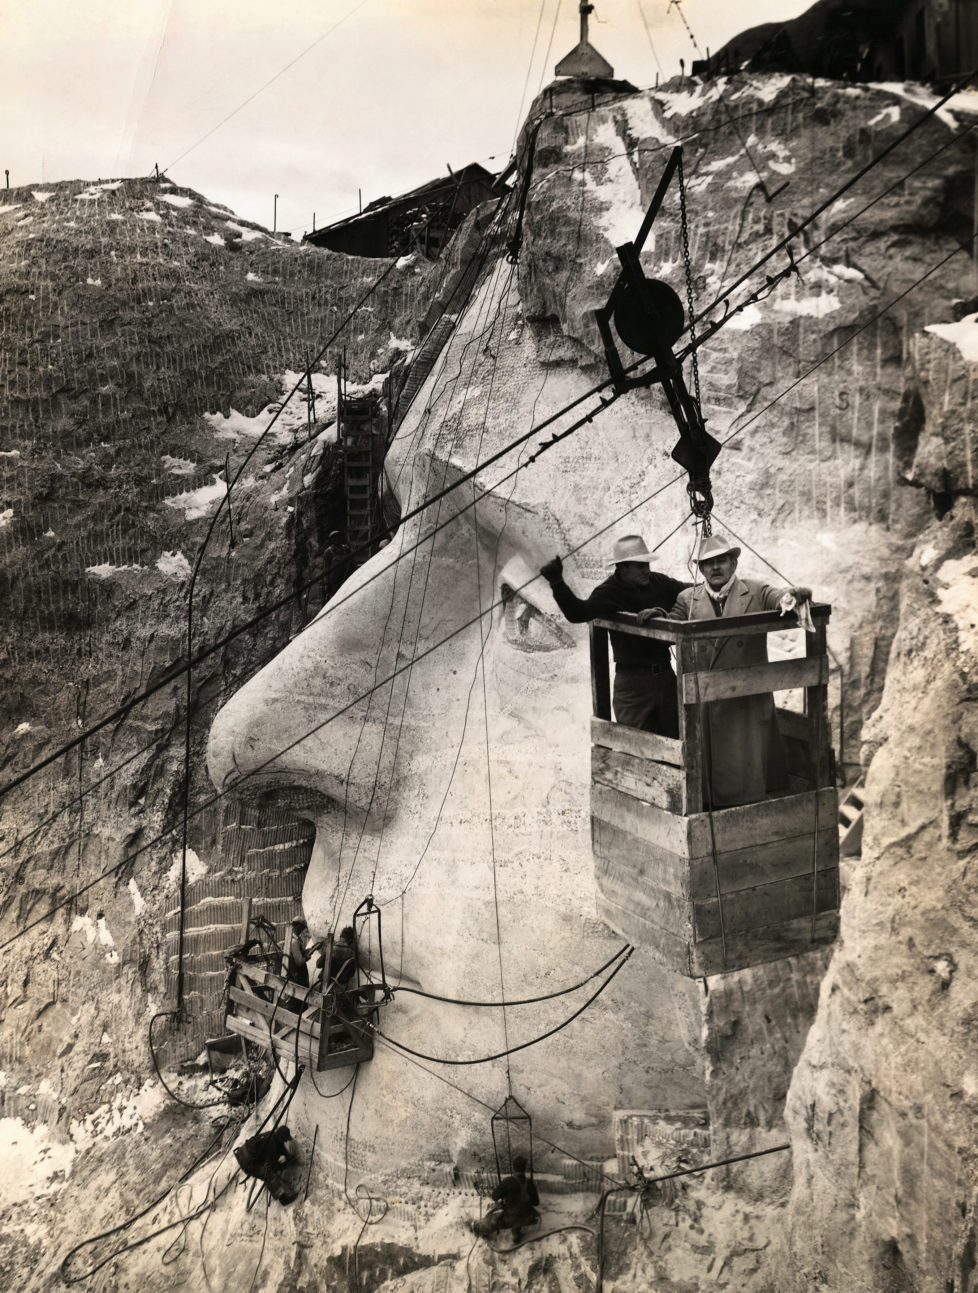 American sculptor Gutzon Borglum, who is leading the Mount Rushmore National Memorial project, and his son, Lincoln, inspect the Jefferson head from an aerial tram. (Photo by George Rinhart/Corbis via Getty Images)